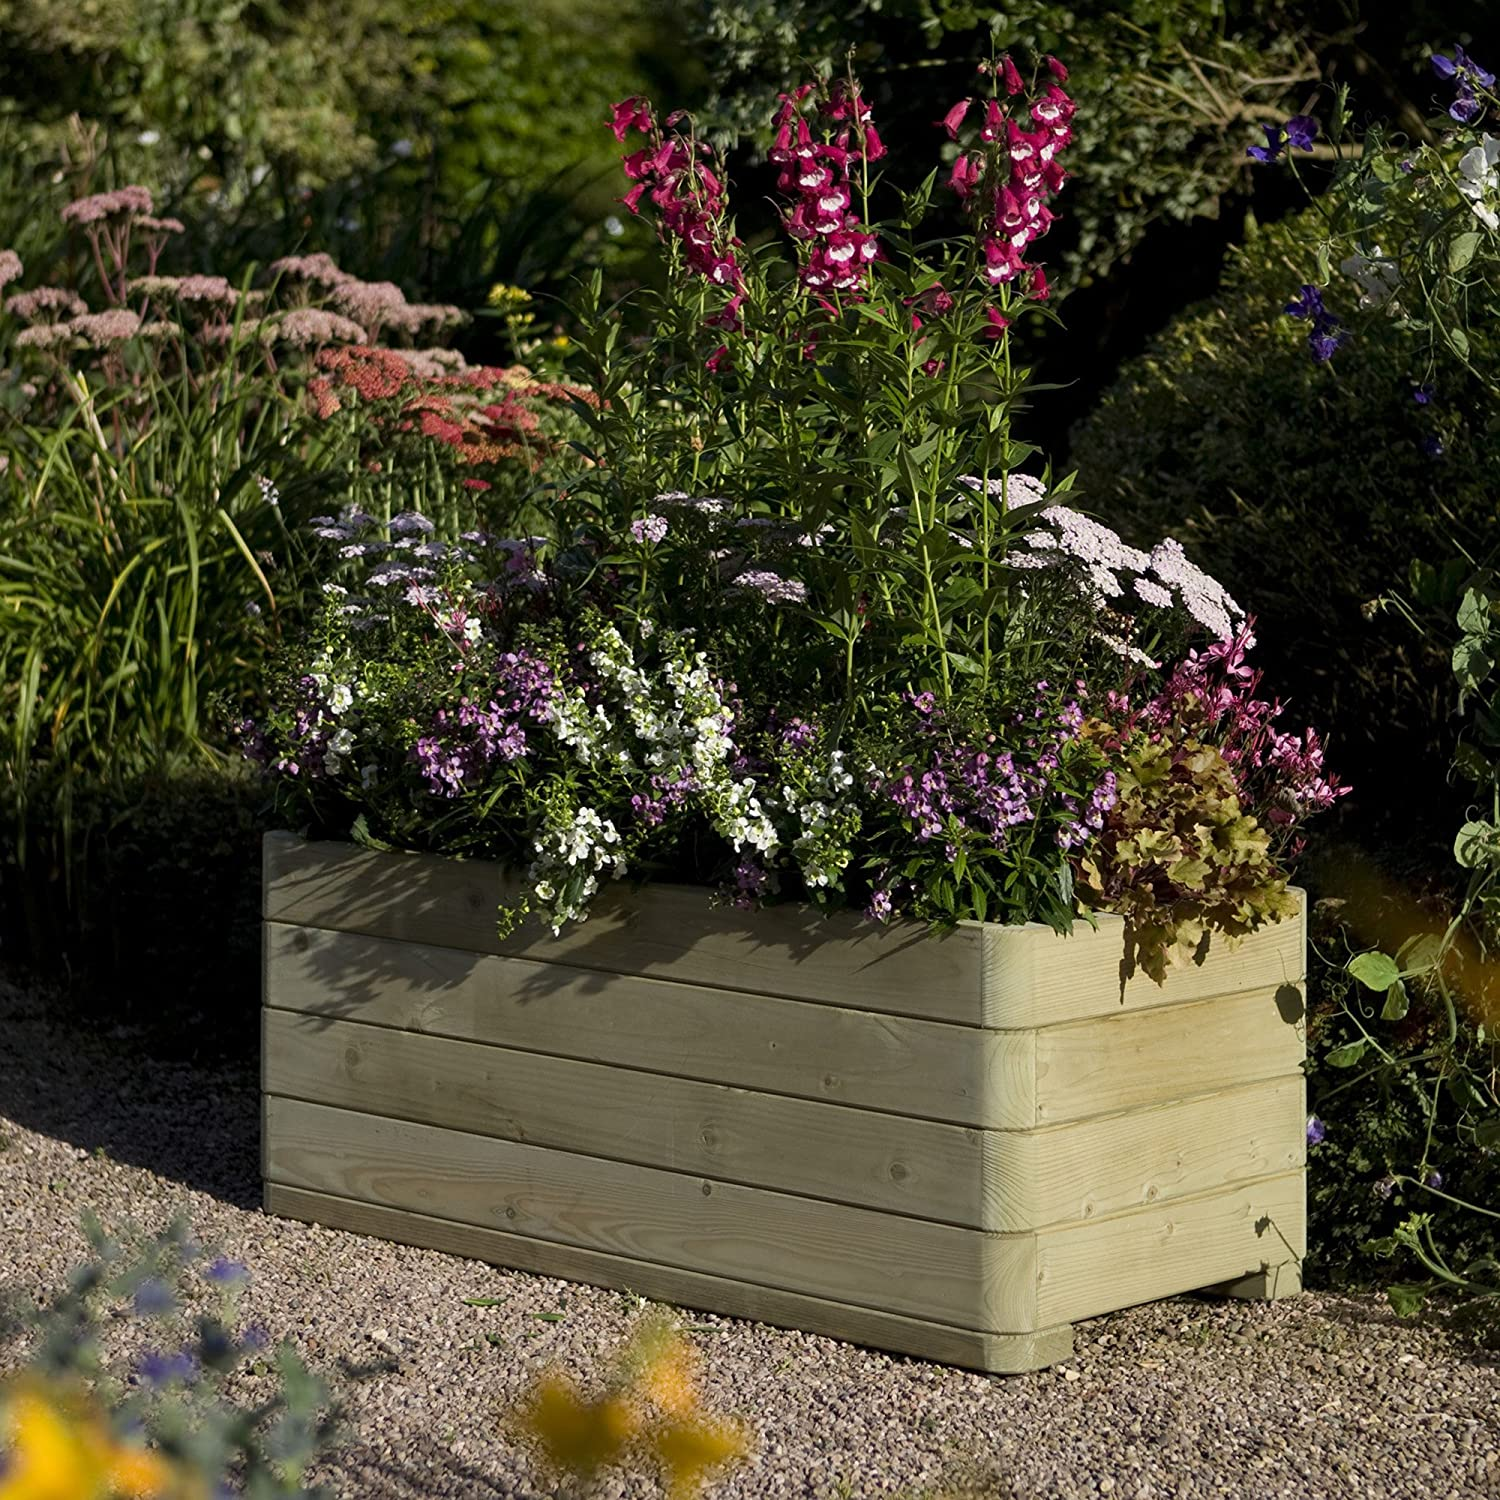 rowlinson marberry rectangular planter amazoncouk garden  - rowlinson marberry rectangular planter amazoncouk garden  outdoors